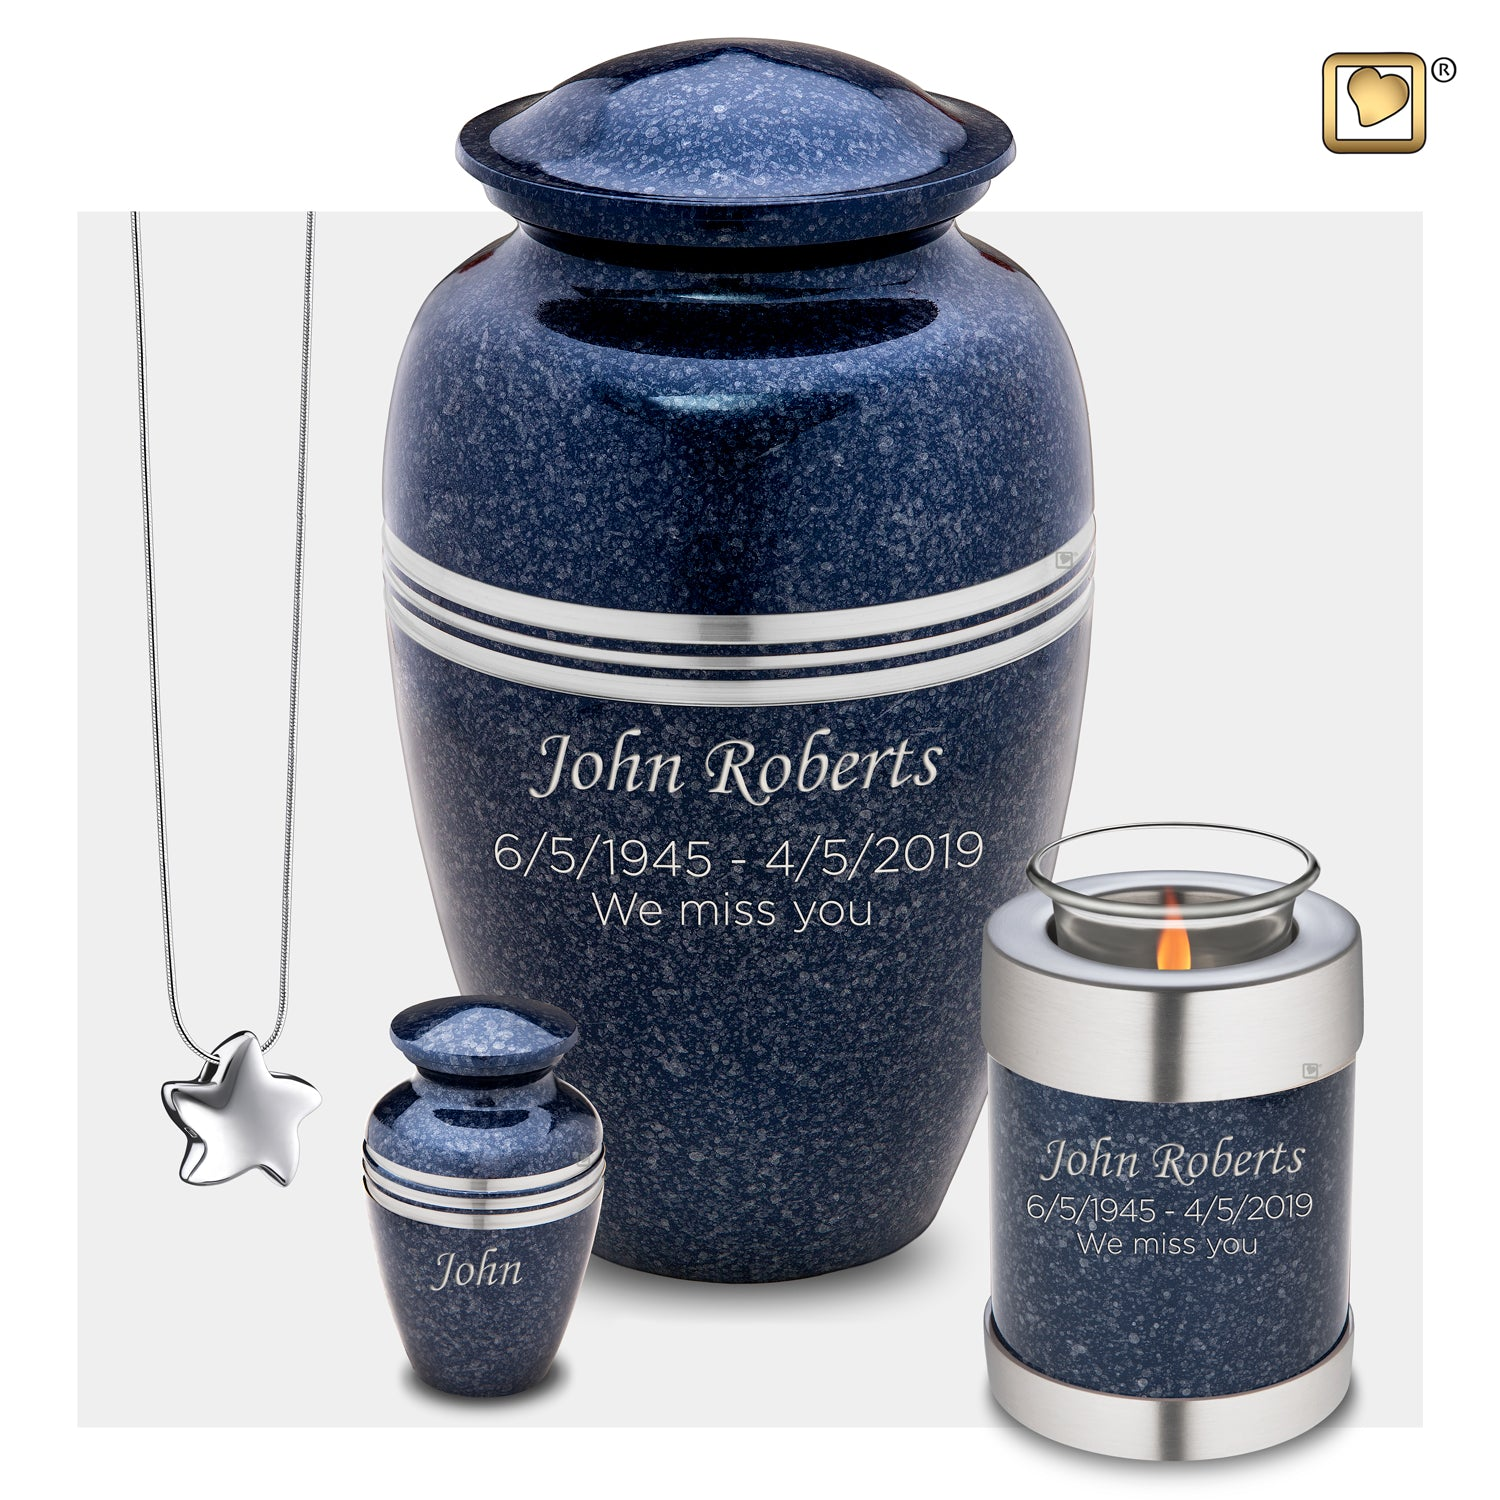 Adult Speckled Indigo Cremation Urn